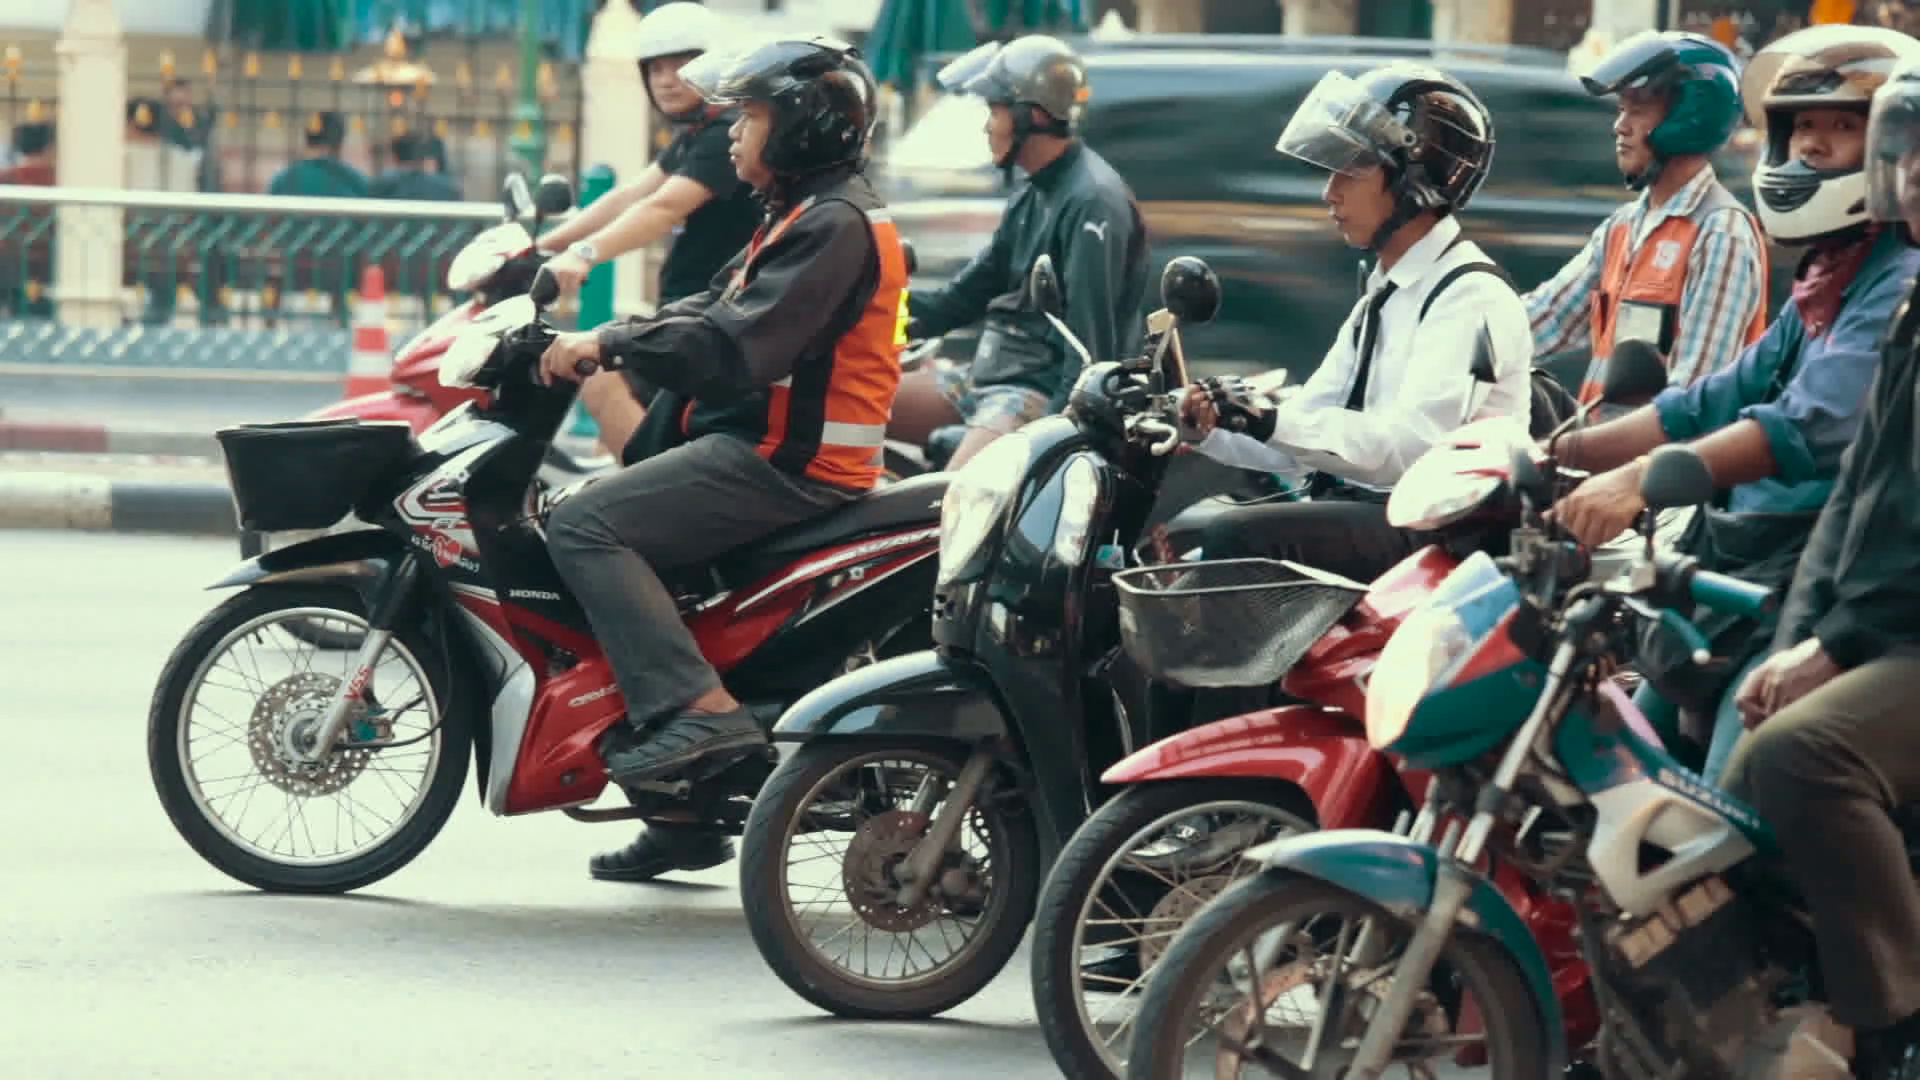 videoblocks-thailand-bangkok-november-20-street-traffic-people-on-mopeds-and-motorcycles-on-the-streets-of-the-city_huep0qwe3x_thumbnail-full01